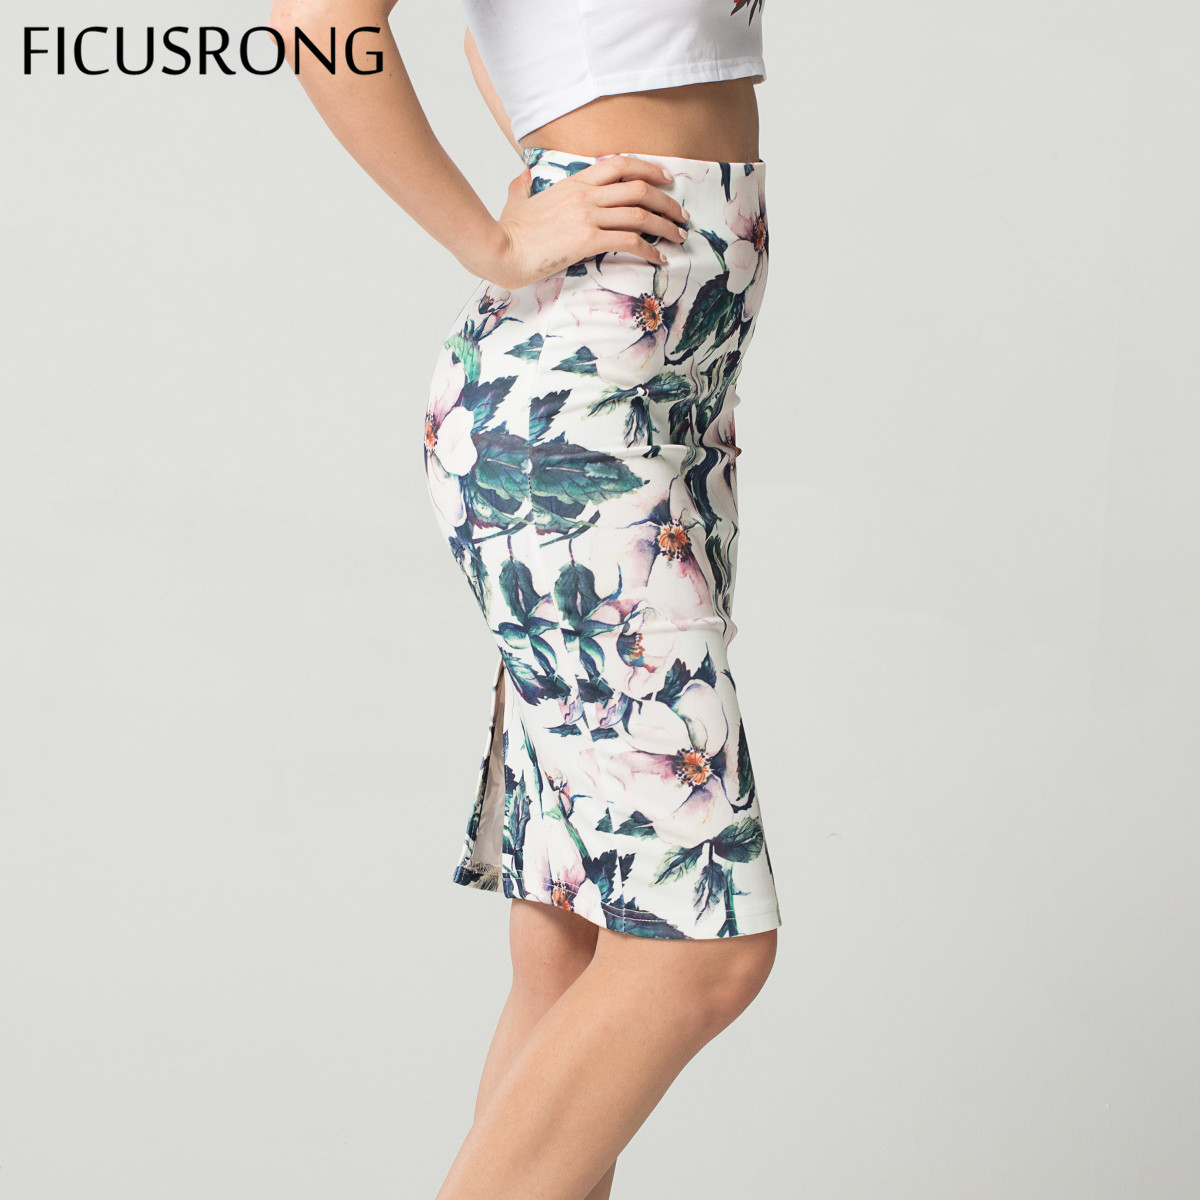 Fashion Spring Summer Style Pencil Skirt Women High Waist Green Skirts Vintage Elegant Bodycon Floral Print Midi Skirt FICUSRONG(China)